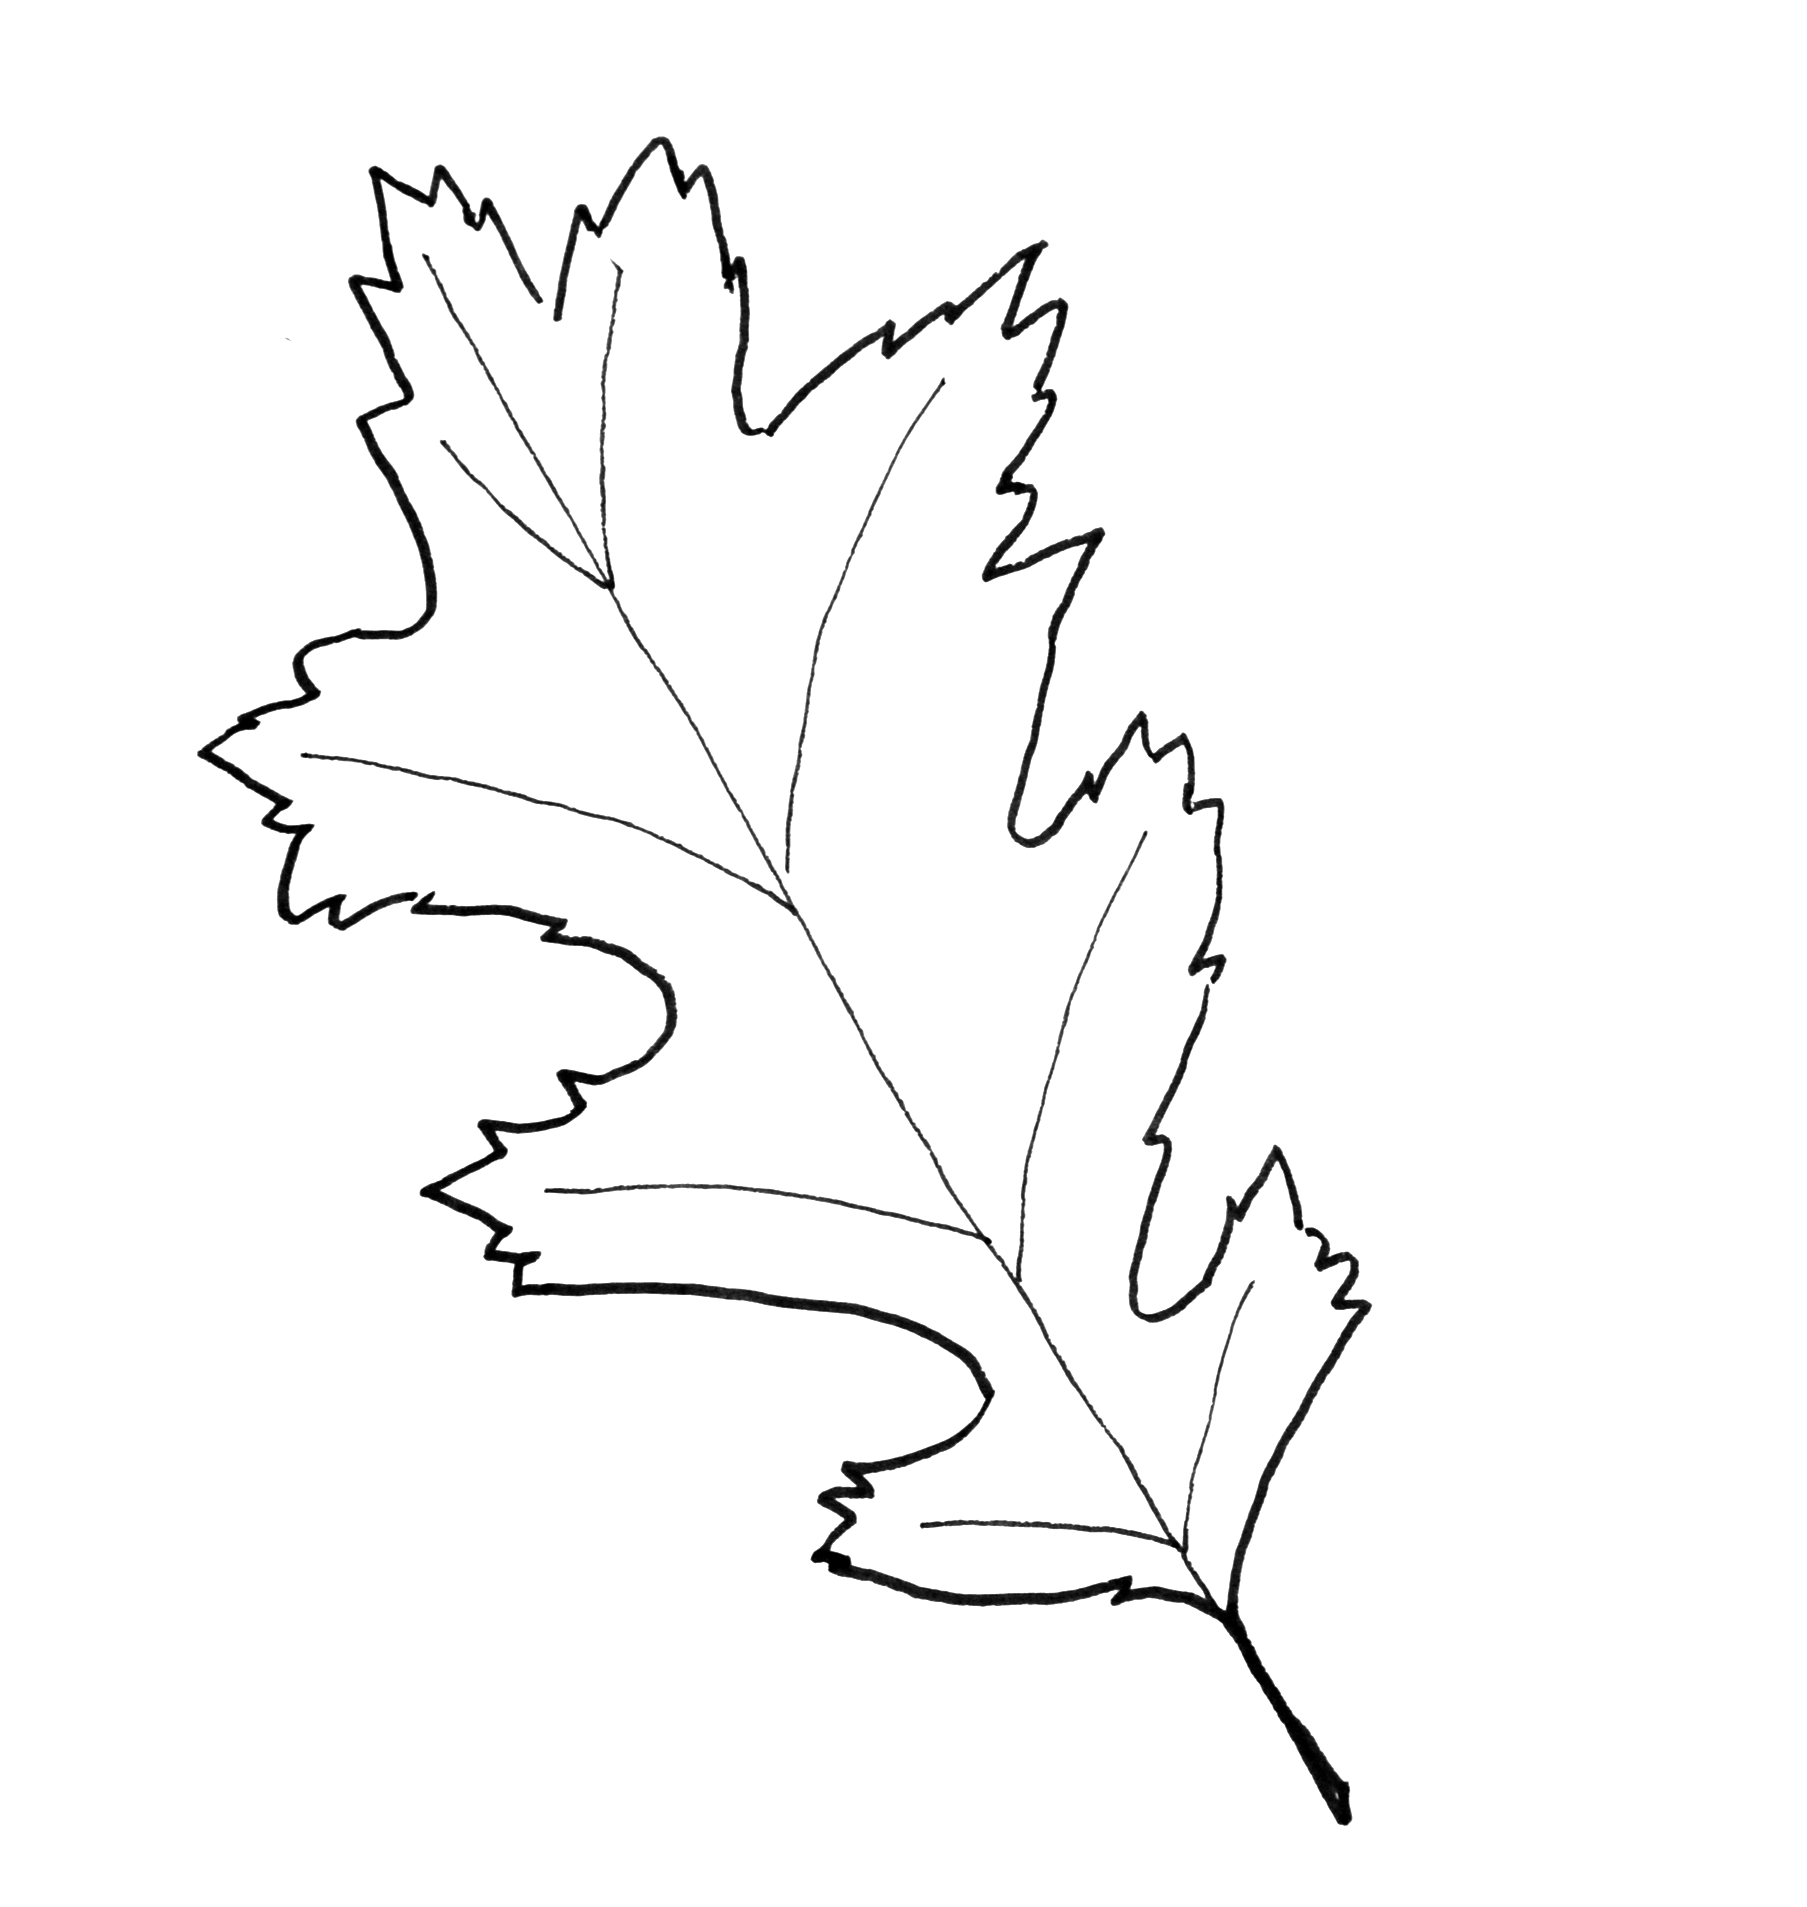 It's just a picture of Monster Printable Leaf Patterns